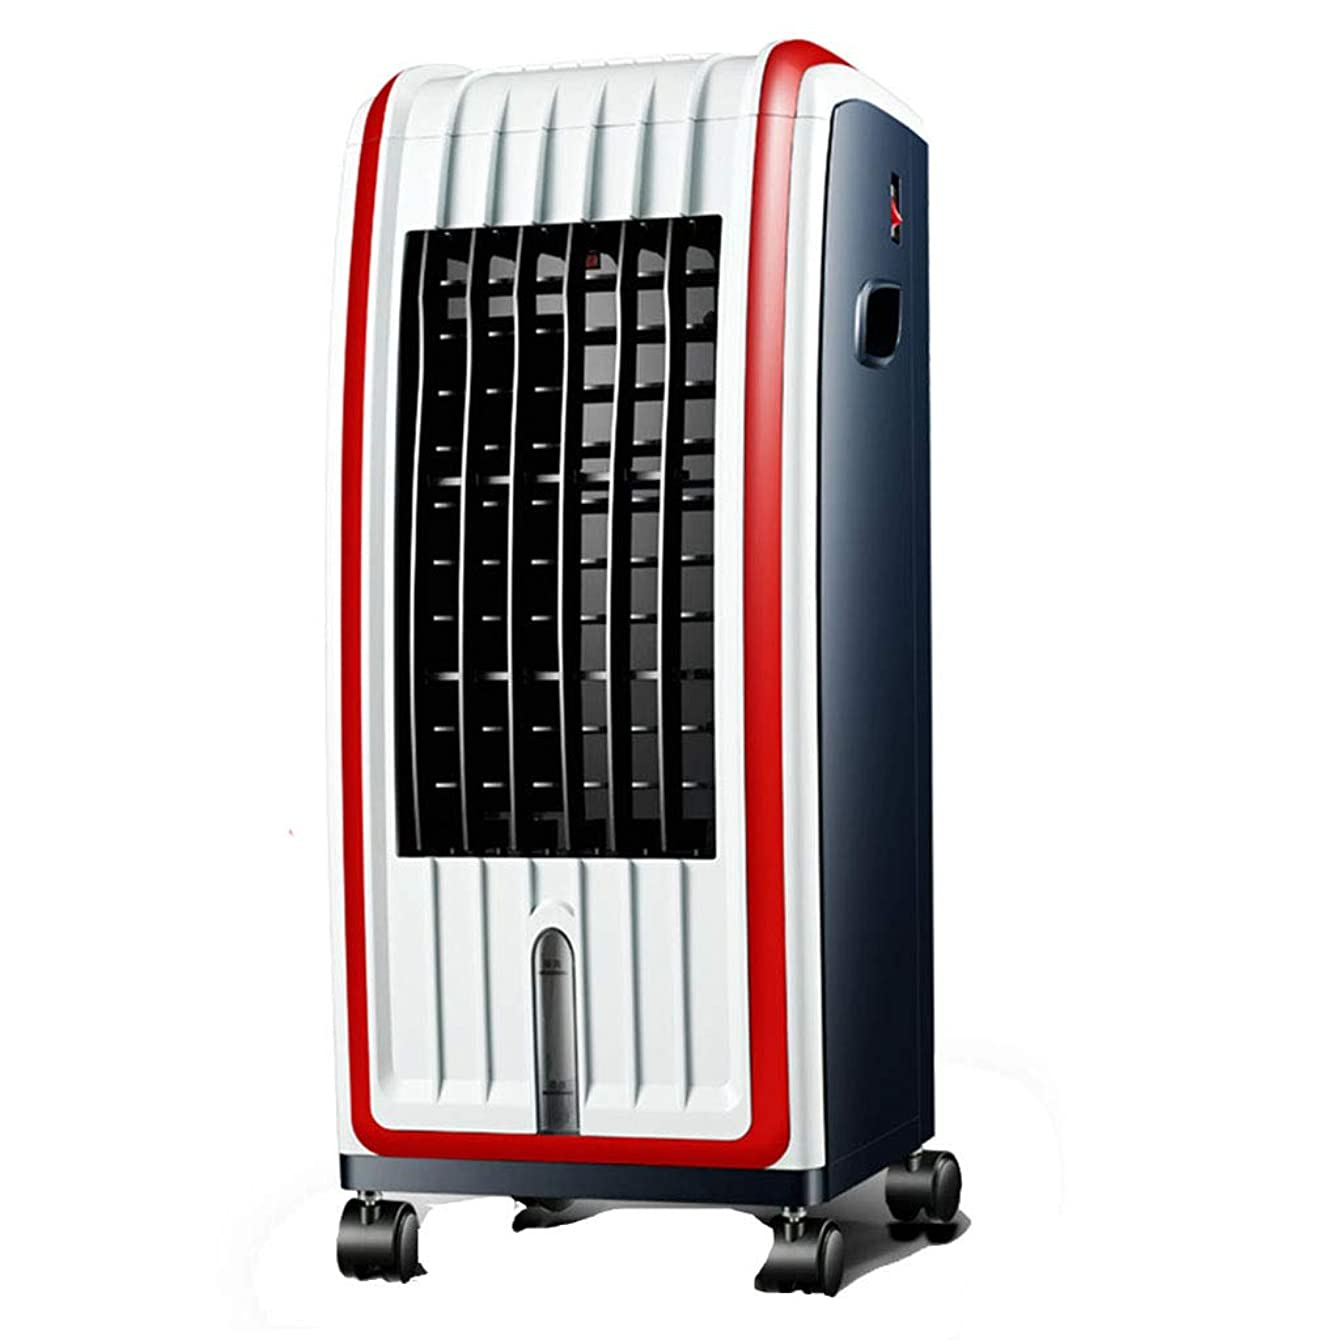 DOOST Air Cooler, Portable evaporative air Cooler with Fan and humidifier leafless Silent Fan with Remote Control for Indoor Home Office dorms